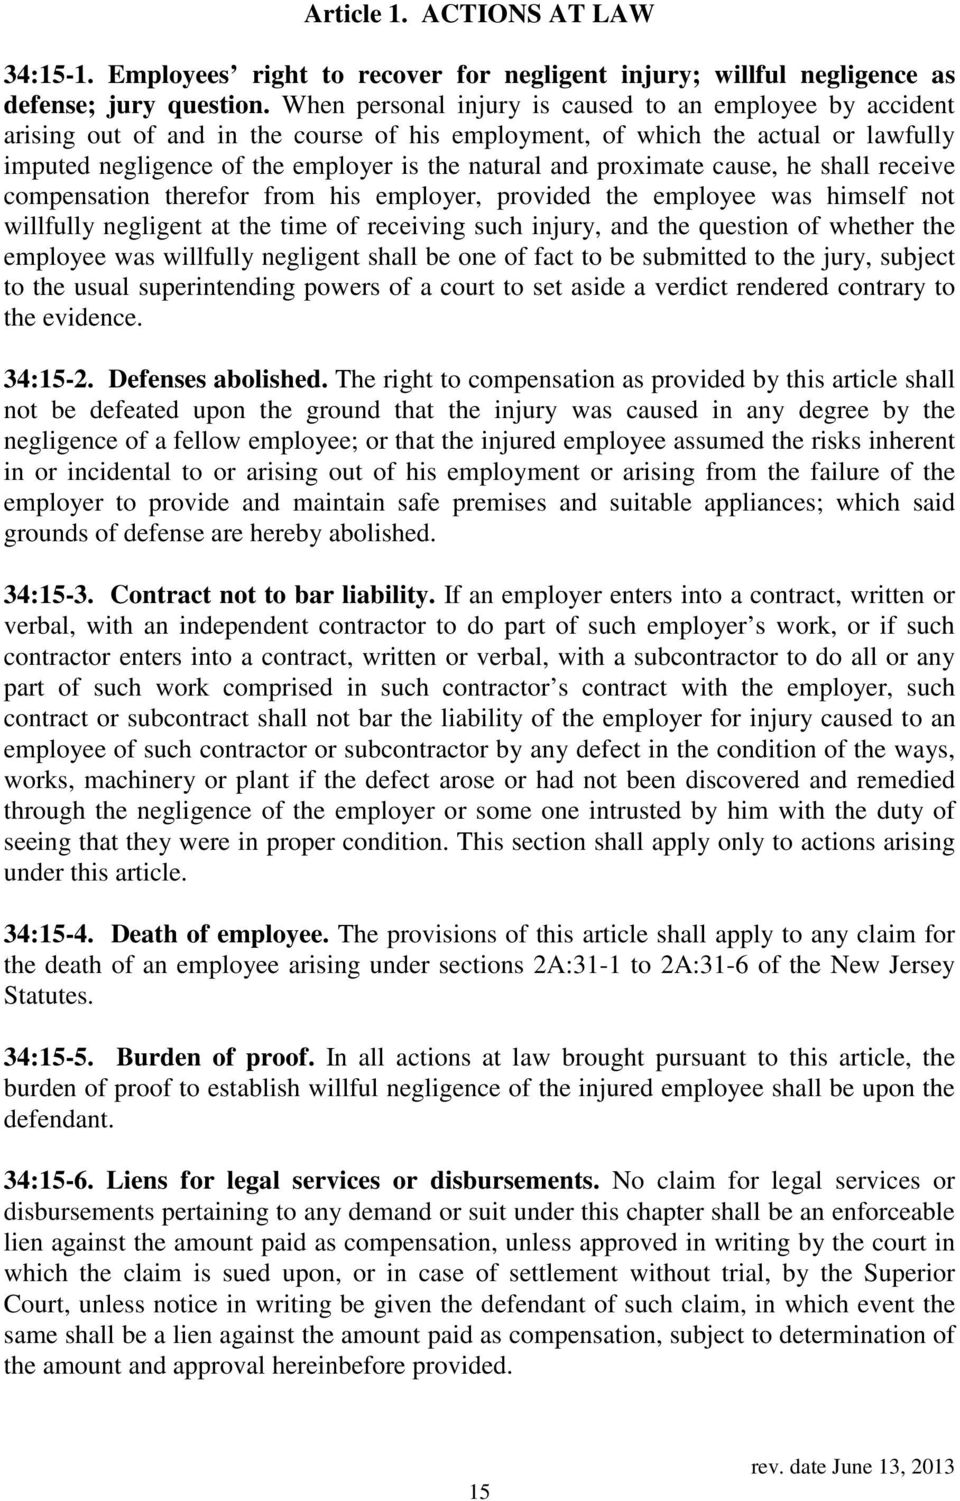 proximate cause, he shall receive compensation therefor from his employer, provided the employee was himself not willfully negligent at the time of receiving such injury, and the question of whether